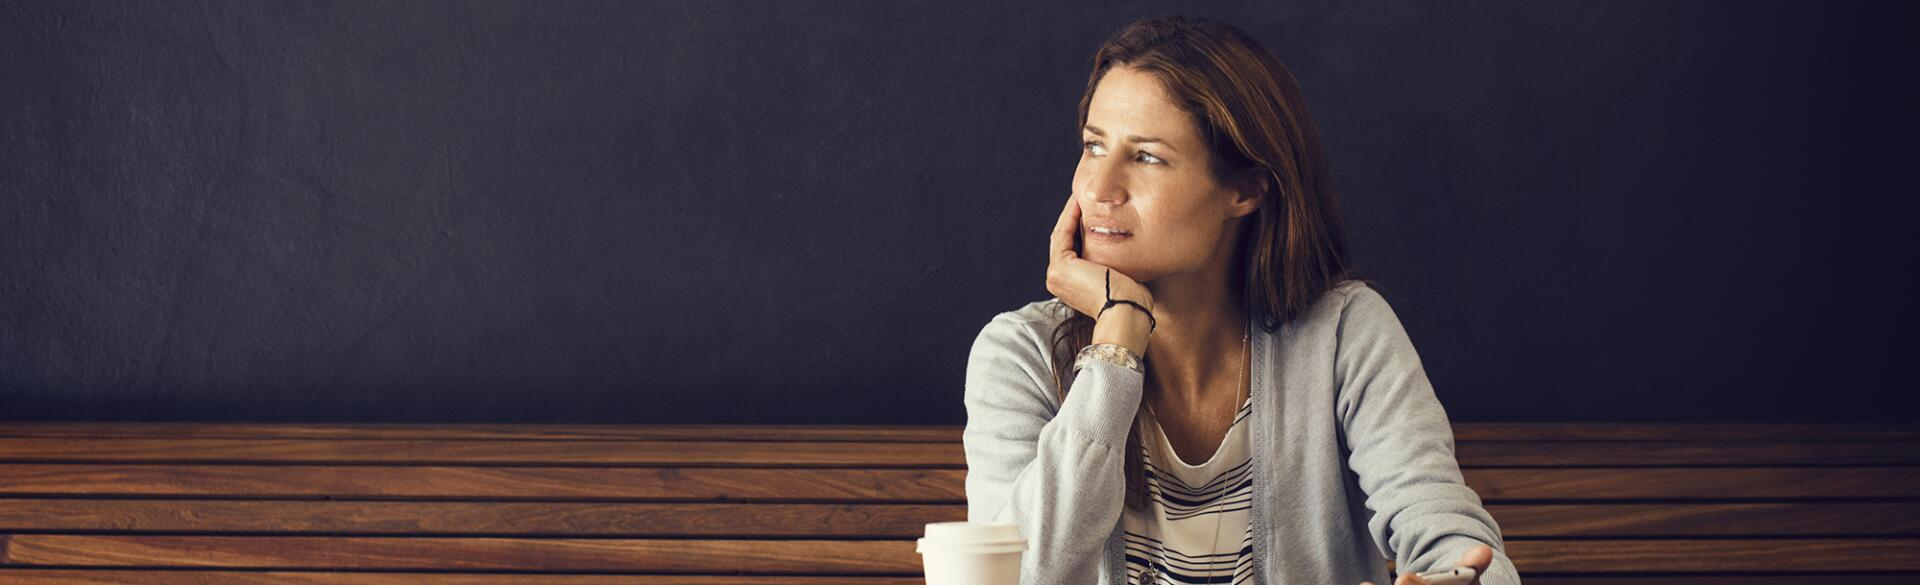 woman sitting alone at coffee shop